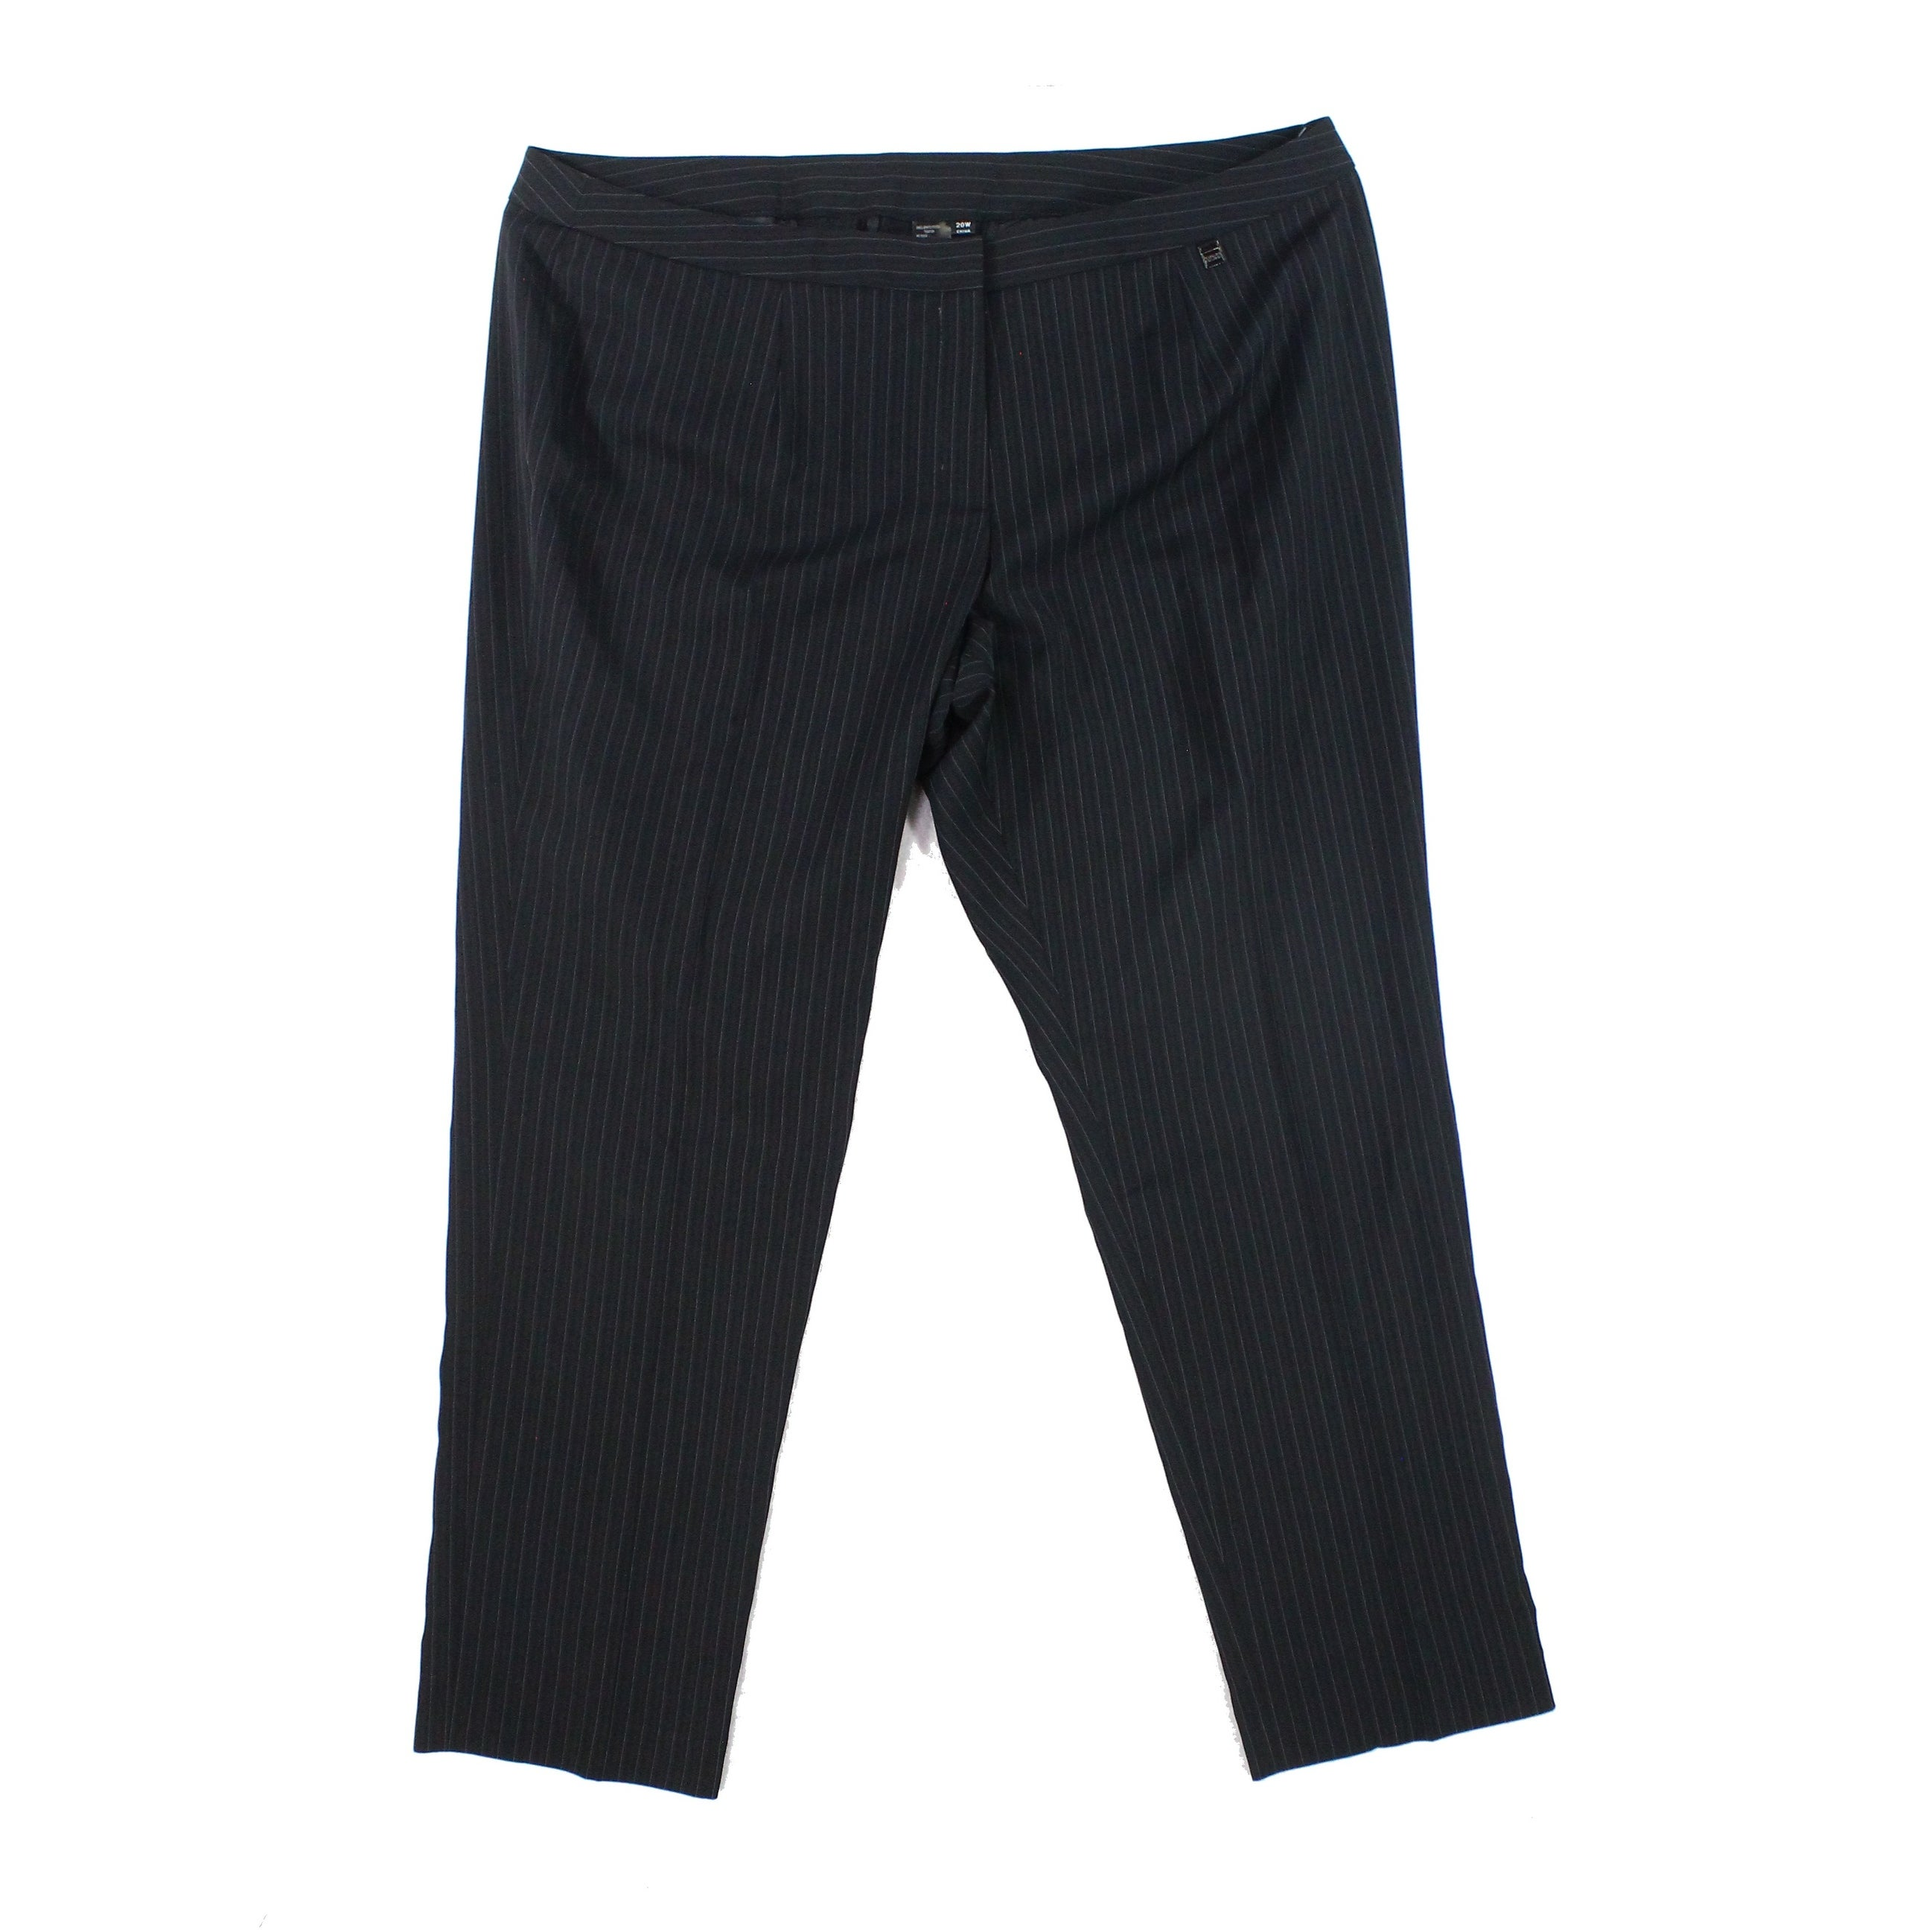 ef65ef3be9d Shop Tahari By ASL NEW Black Womens Size 20W Plus Pinstripe Dress Pants -  Free Shipping On Orders Over  45 - Overstock.com - 21804932